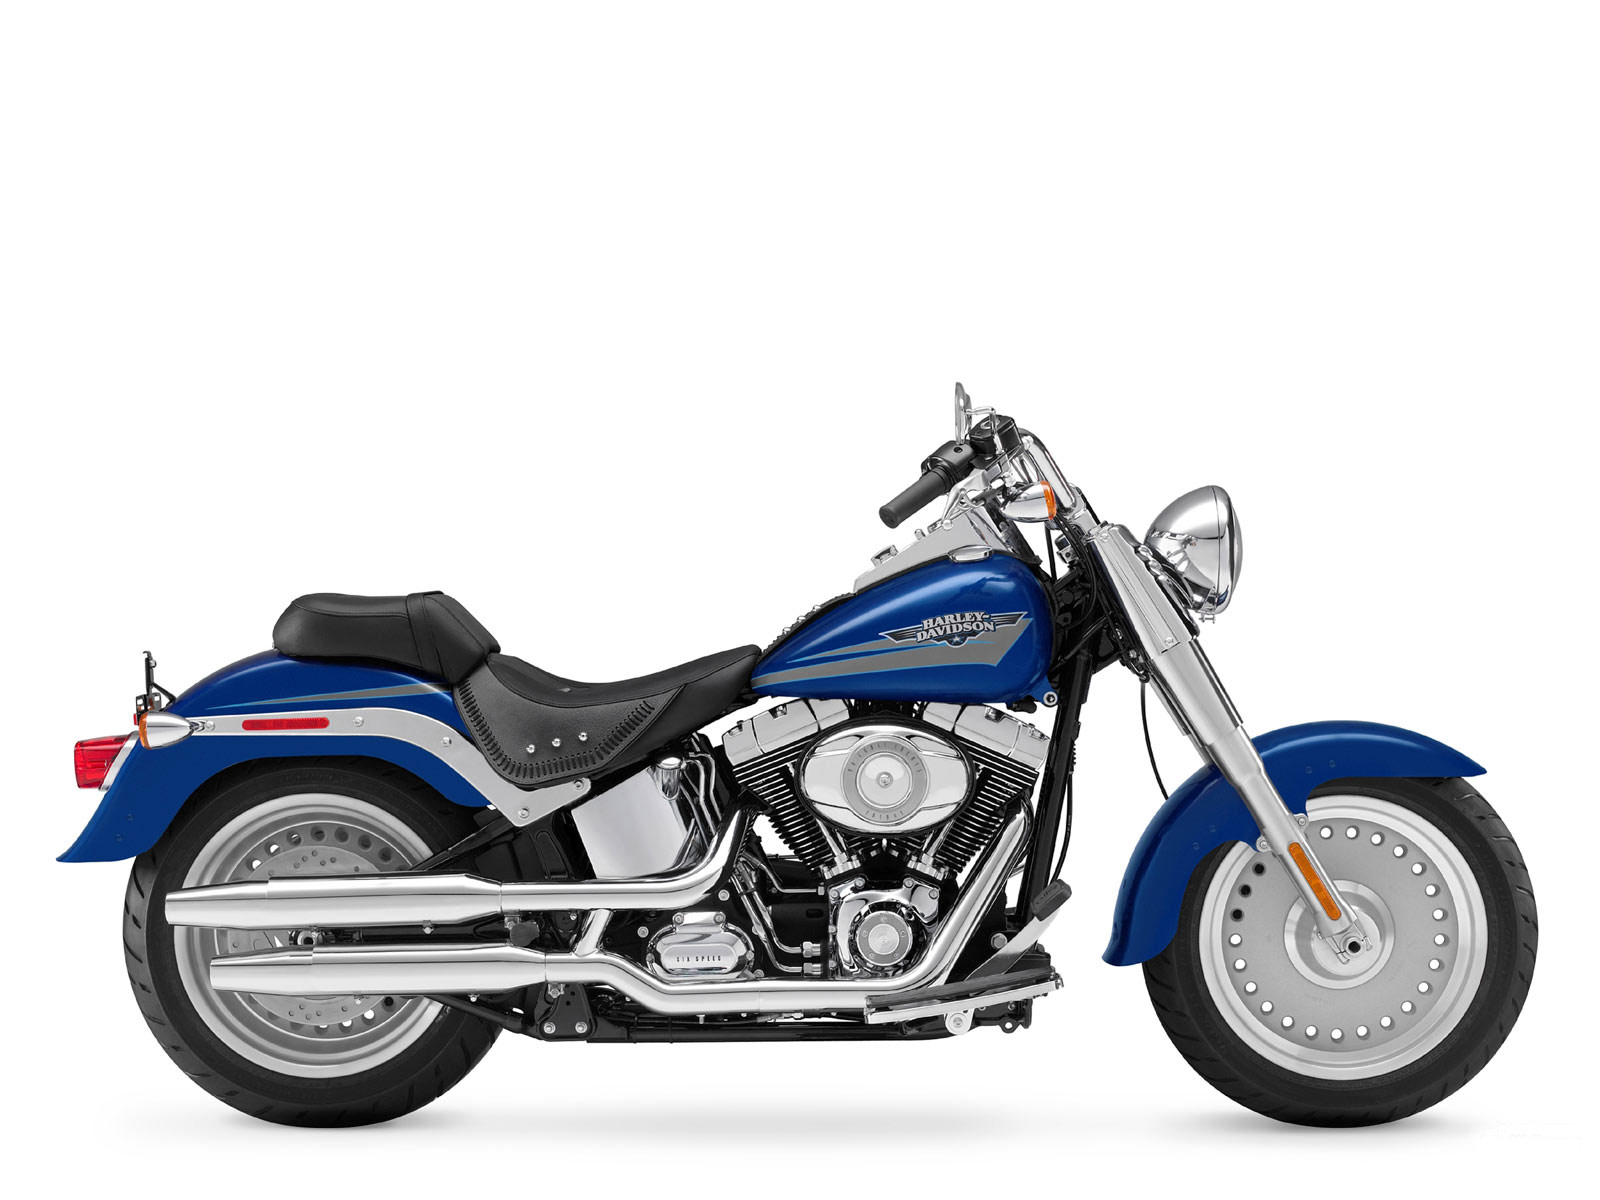 Harley Davidson Motorcycles: 2009 Harley-Davidson FLSTF Fat Boy Insurance Info, Wallpaper